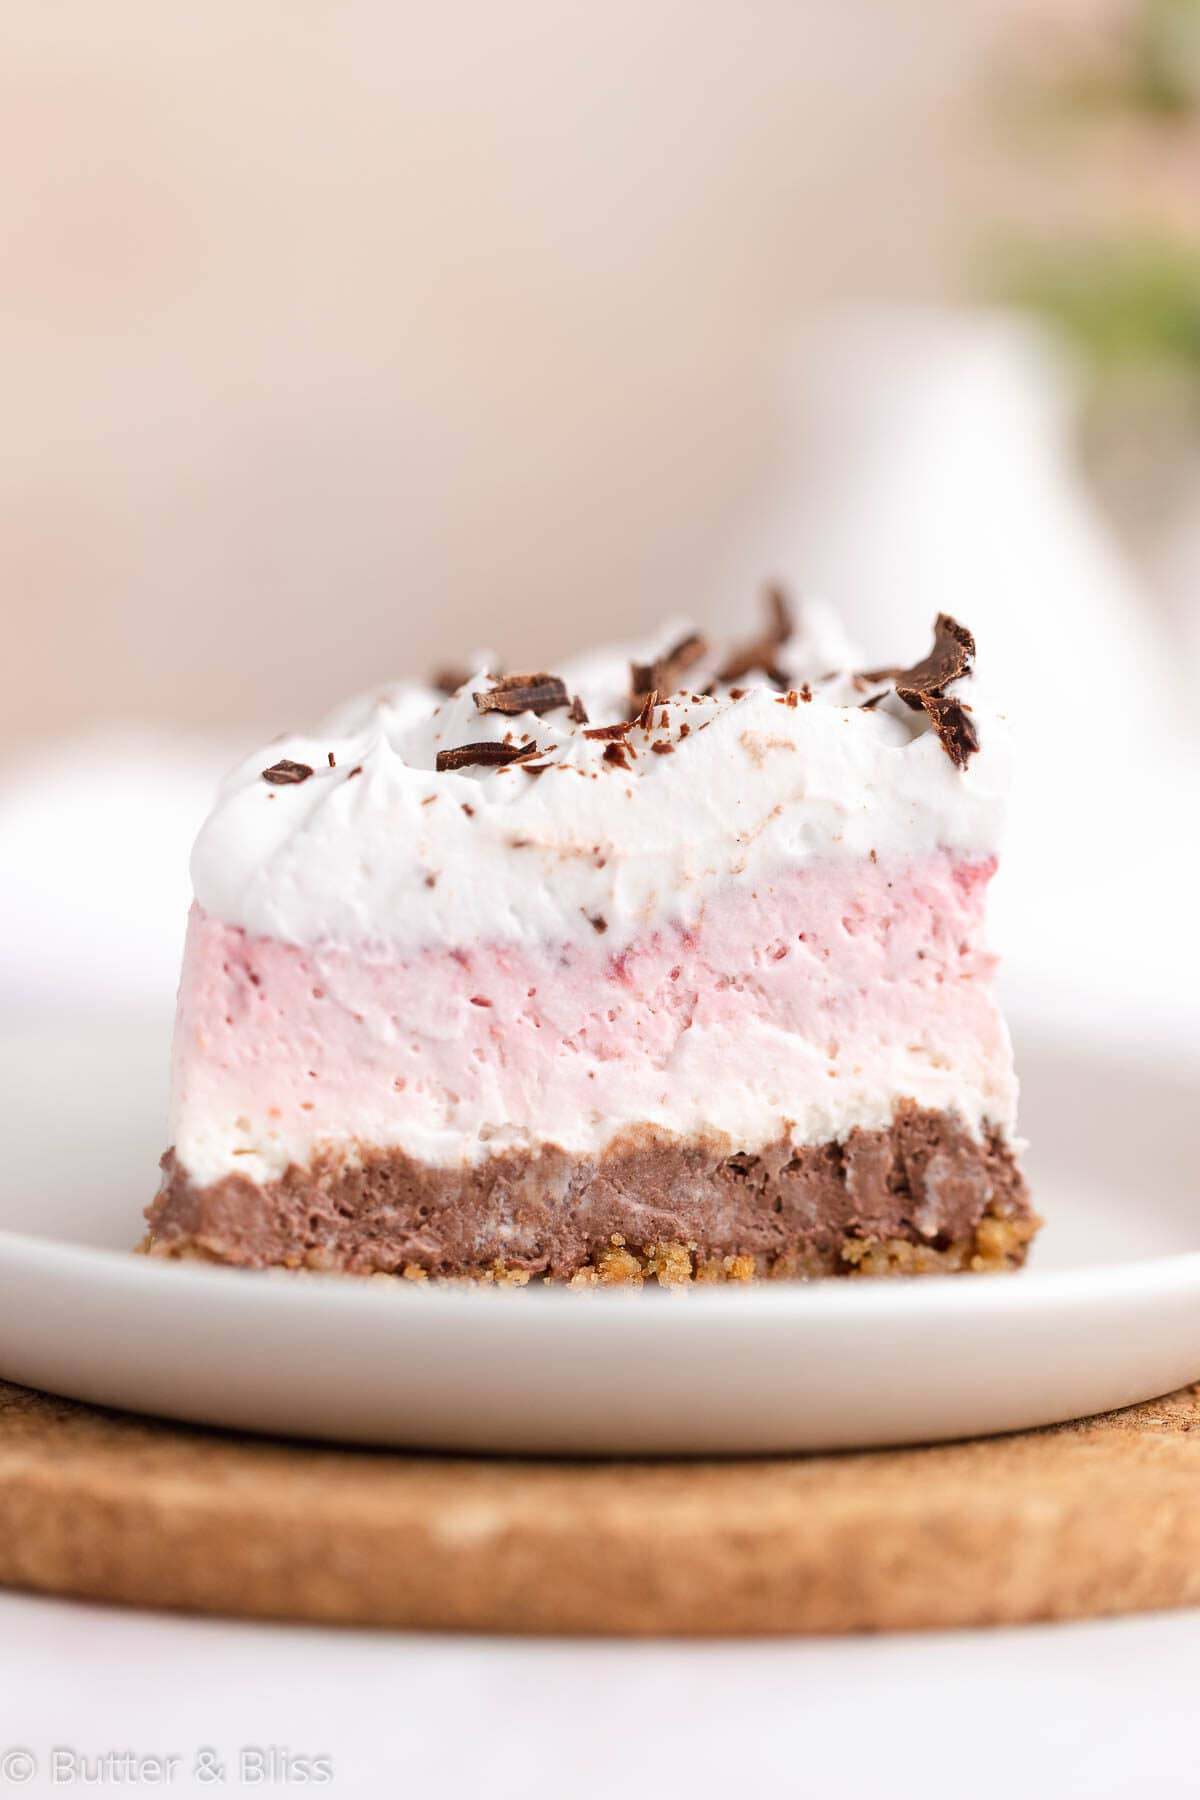 Side close-up view of a neapolitan cheesecake slice